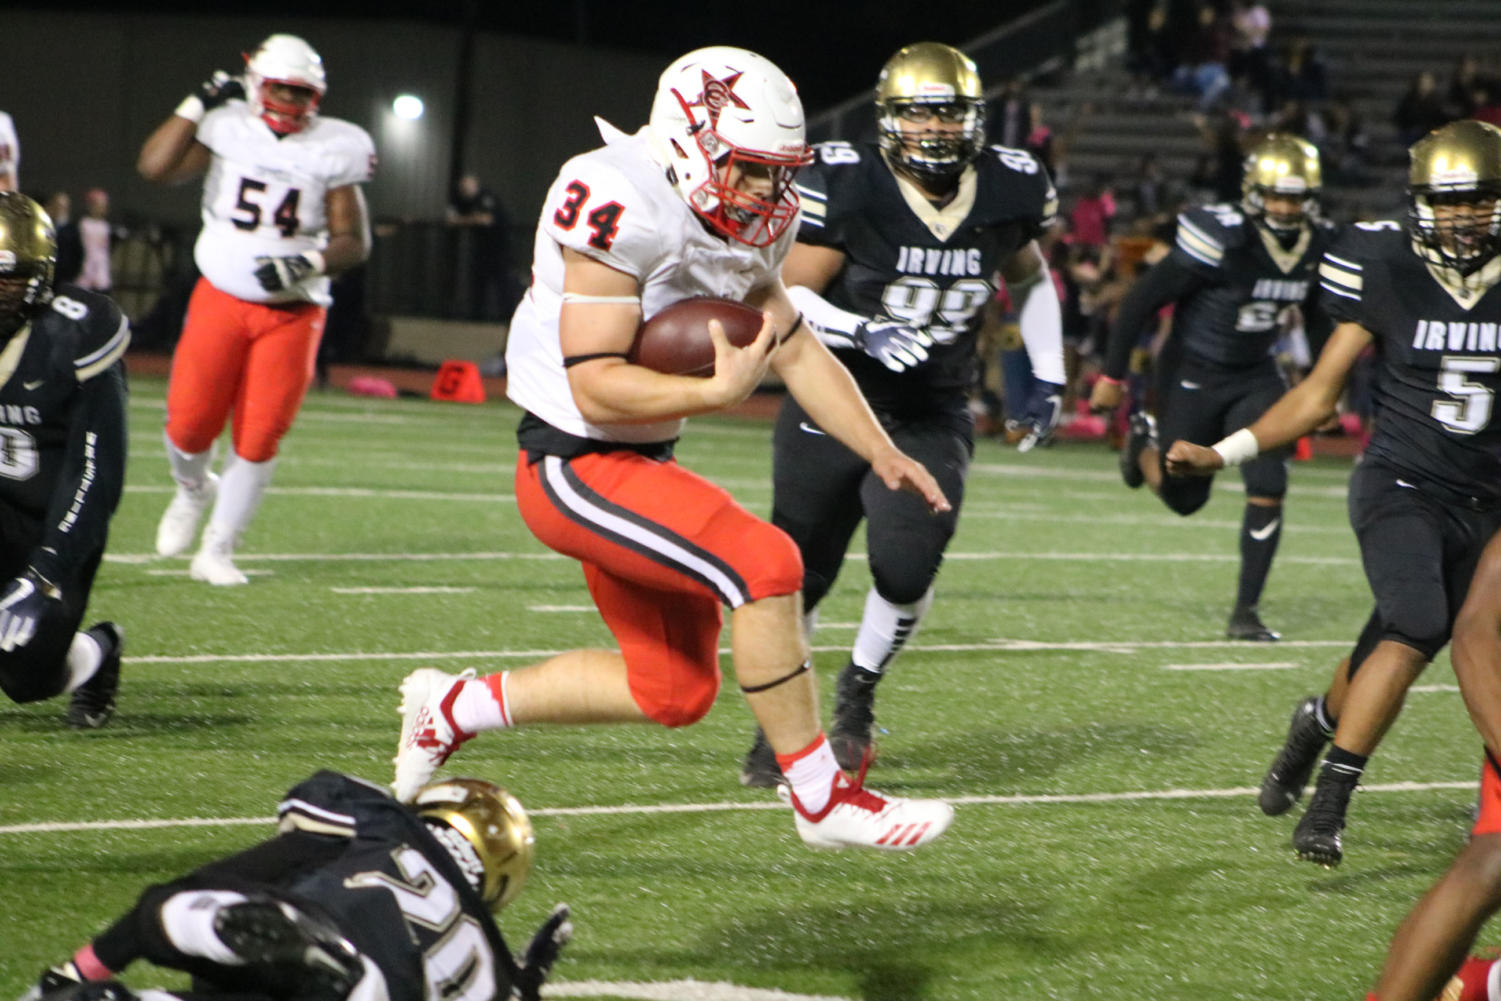 Coppell senior running back Ryan Hirt runs the ball towards Cowboys end zone during the game at Joy & Ralph Ellis Stadium on Oct. 26. The Coppell Cowboys defeated the Irving Tigers 48-13.